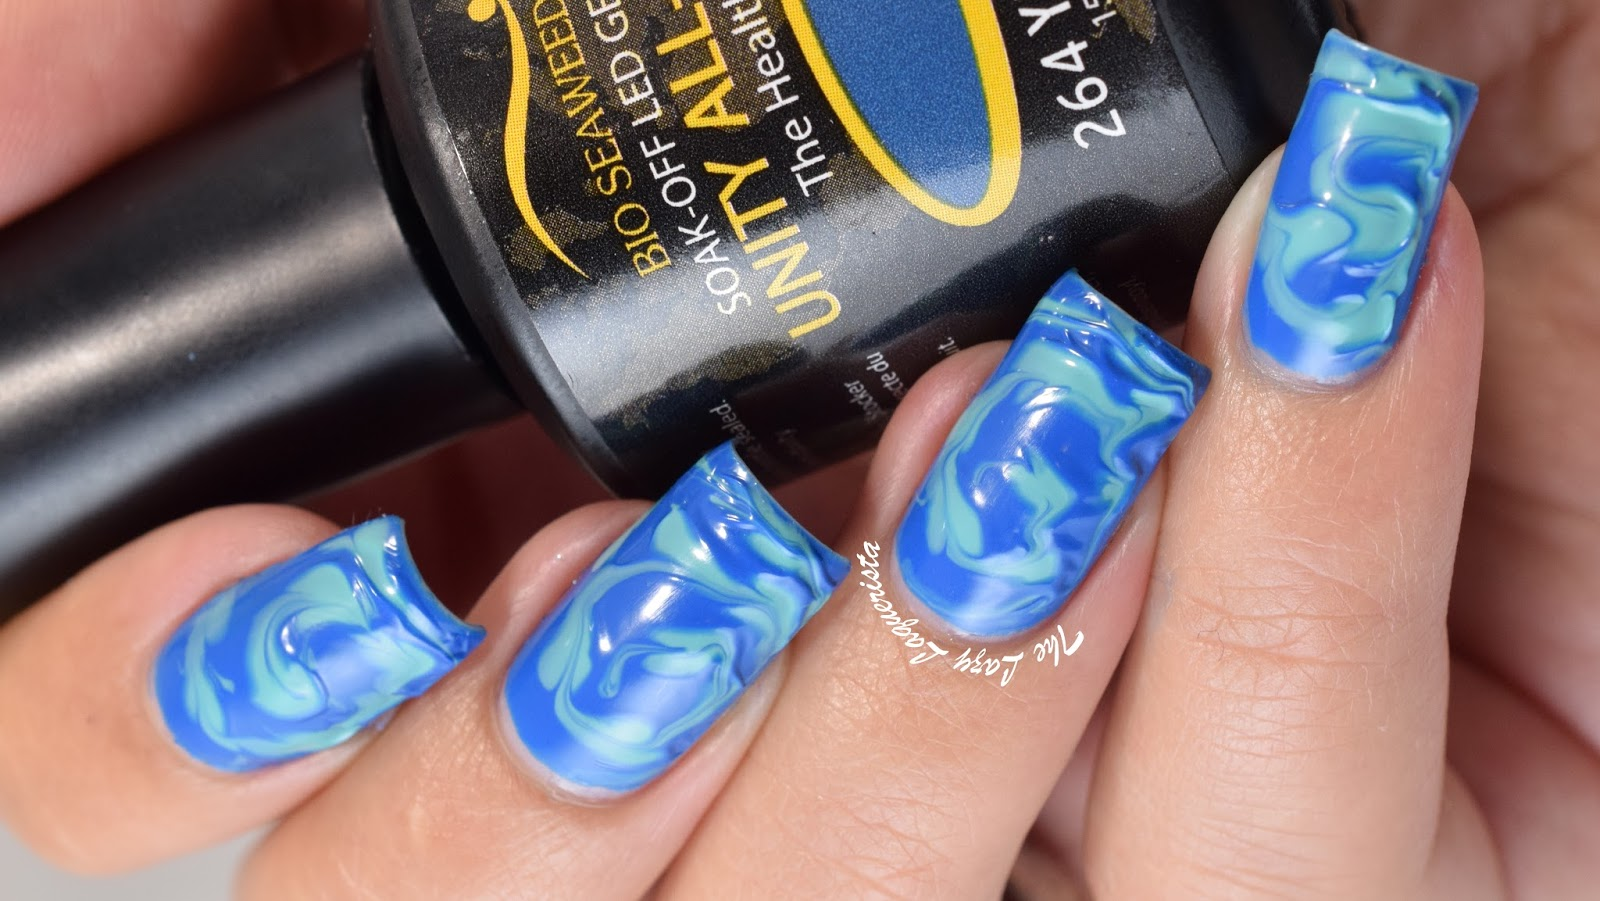 Manicure Manifesto Bio Seaweed Gel Welcome To Summer Nail Art Contest